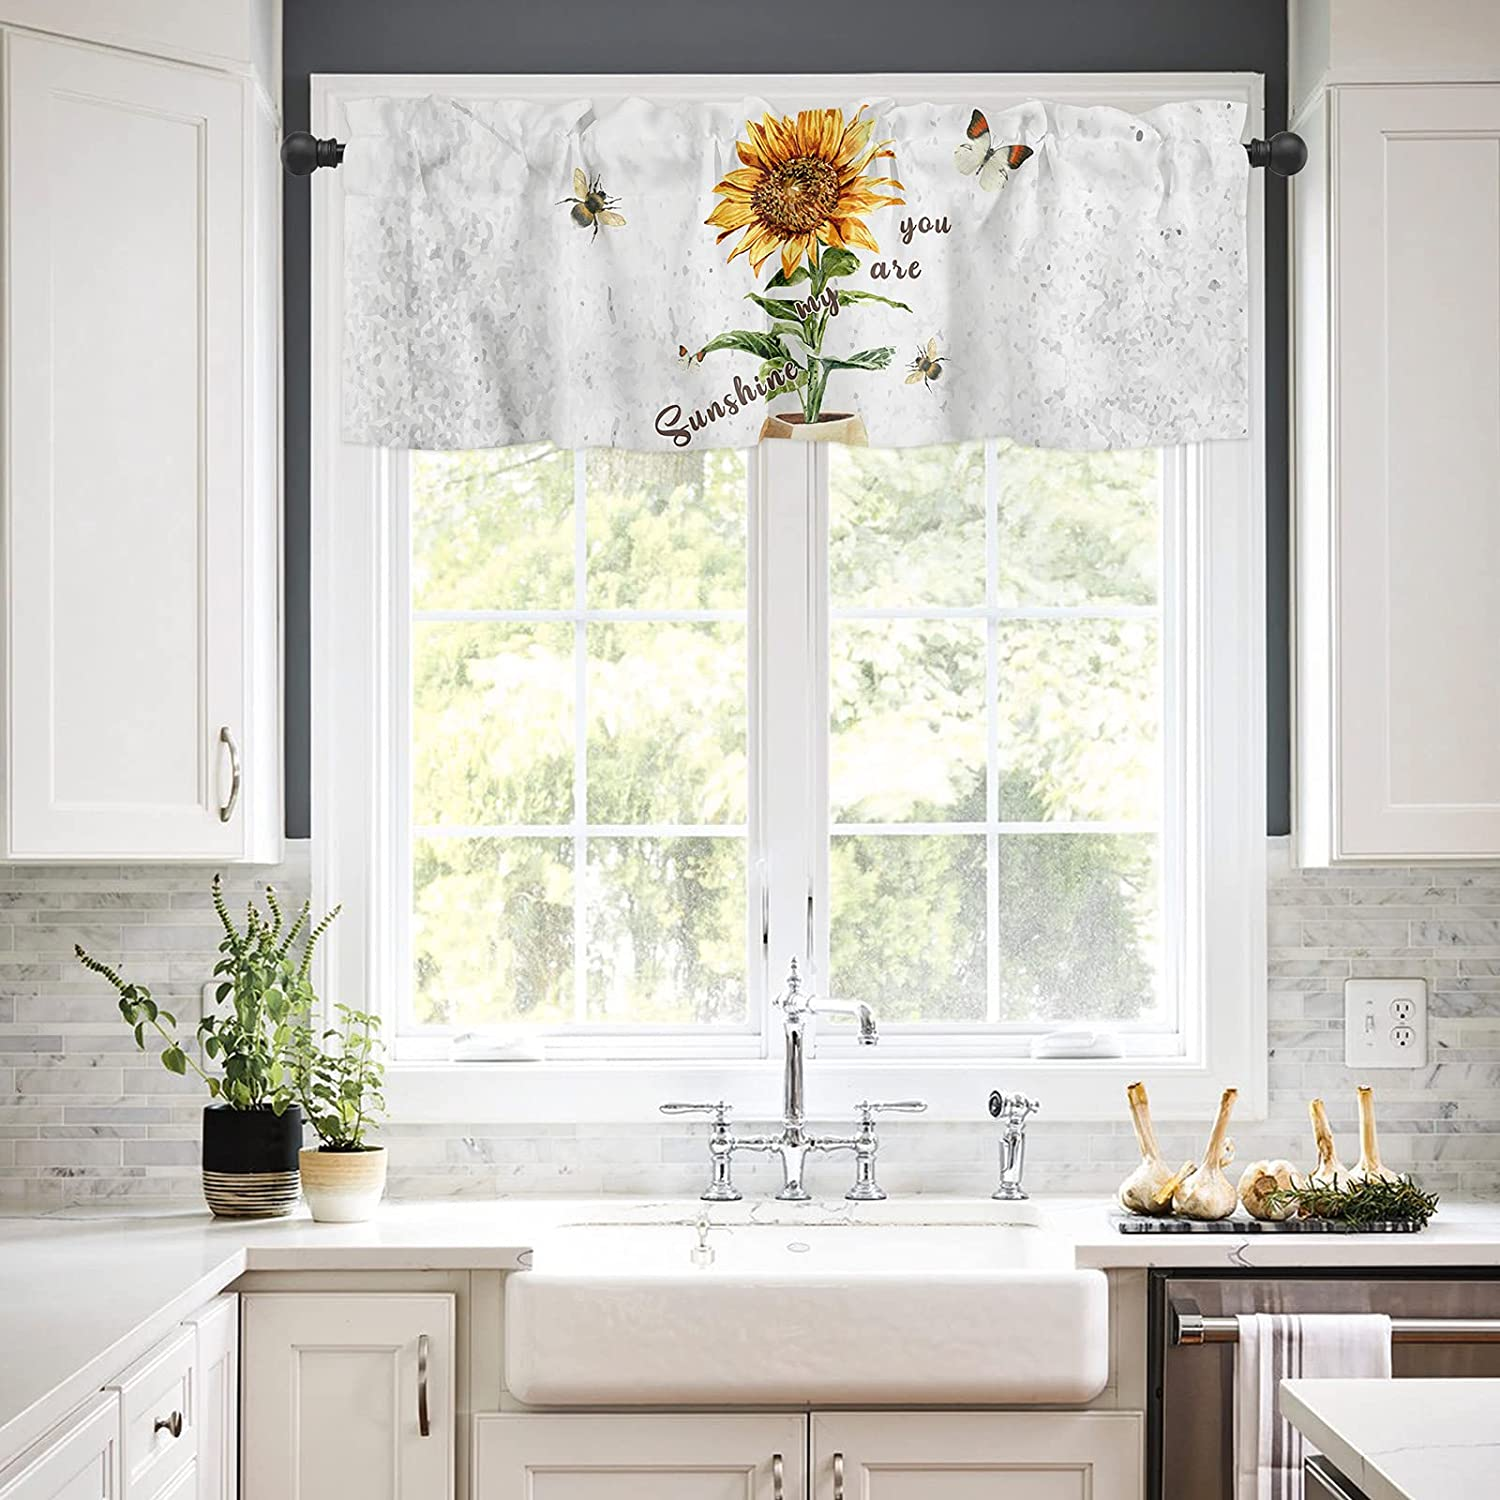 Rod Pocket Window Valances Curtains for Gifts You are Sunsh My Kitchen Safety and trust